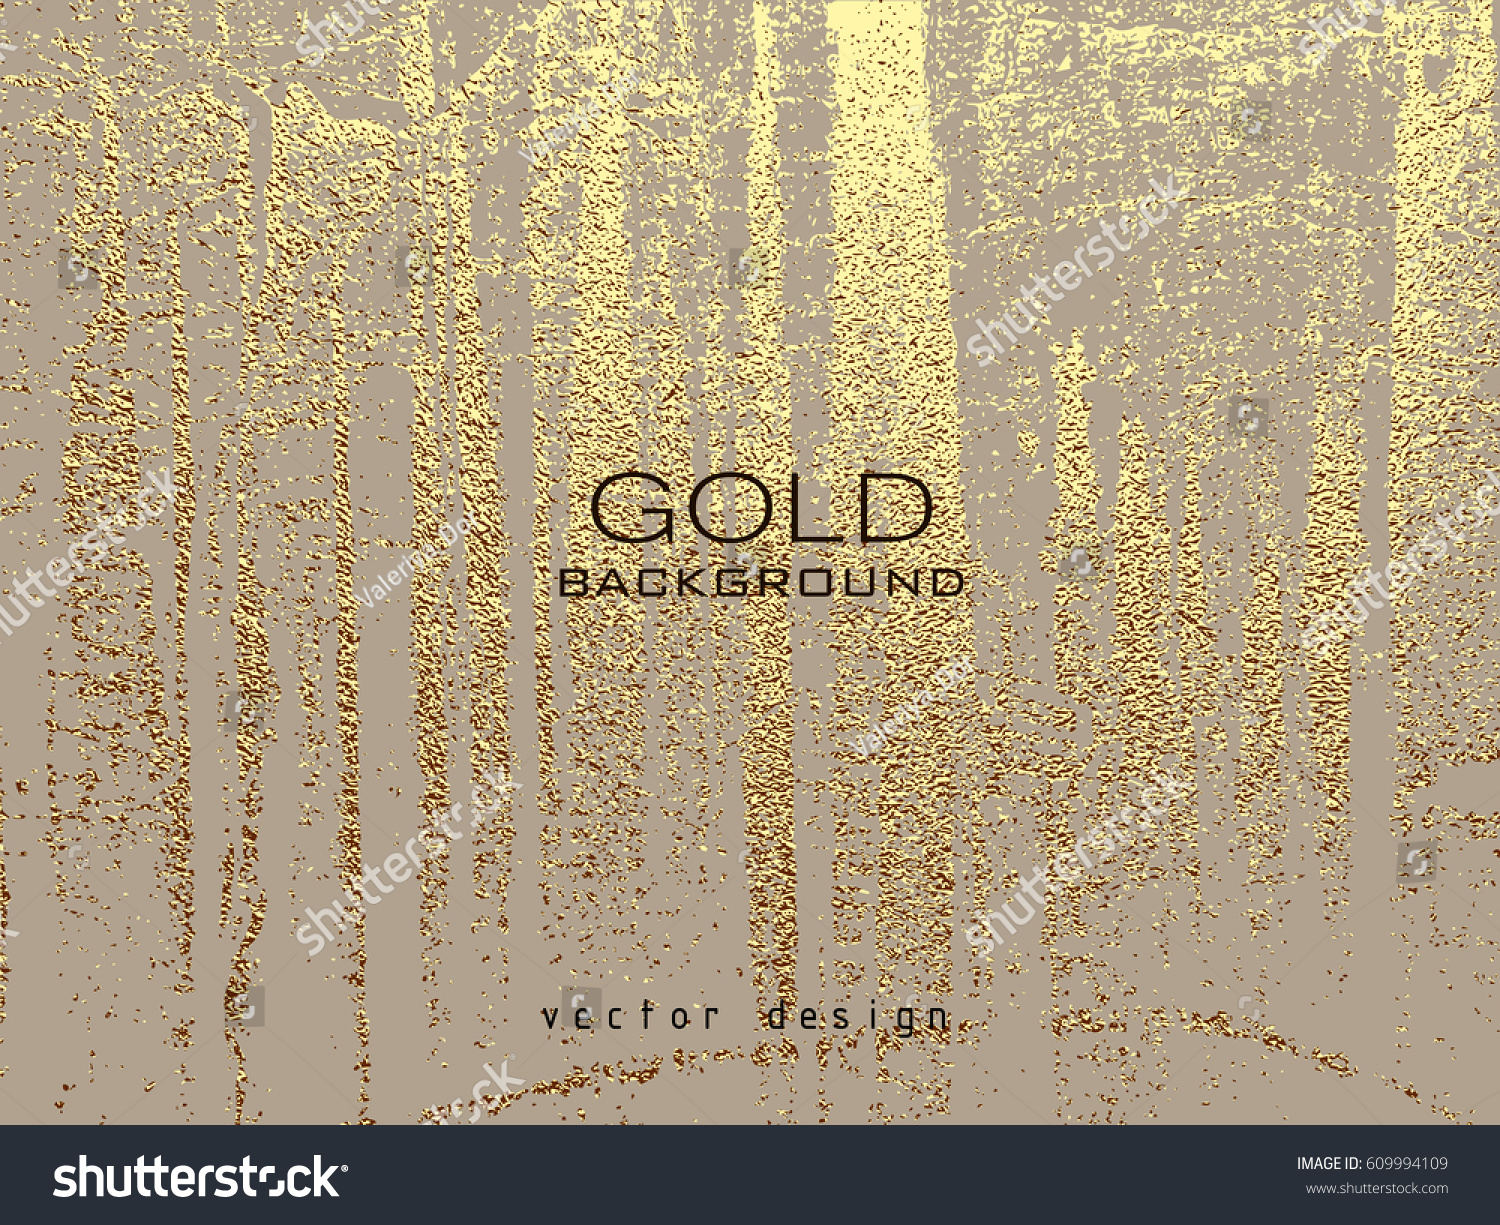 Gold Grunge Texture Create Distressed Effect Stock Vector (2018 ...